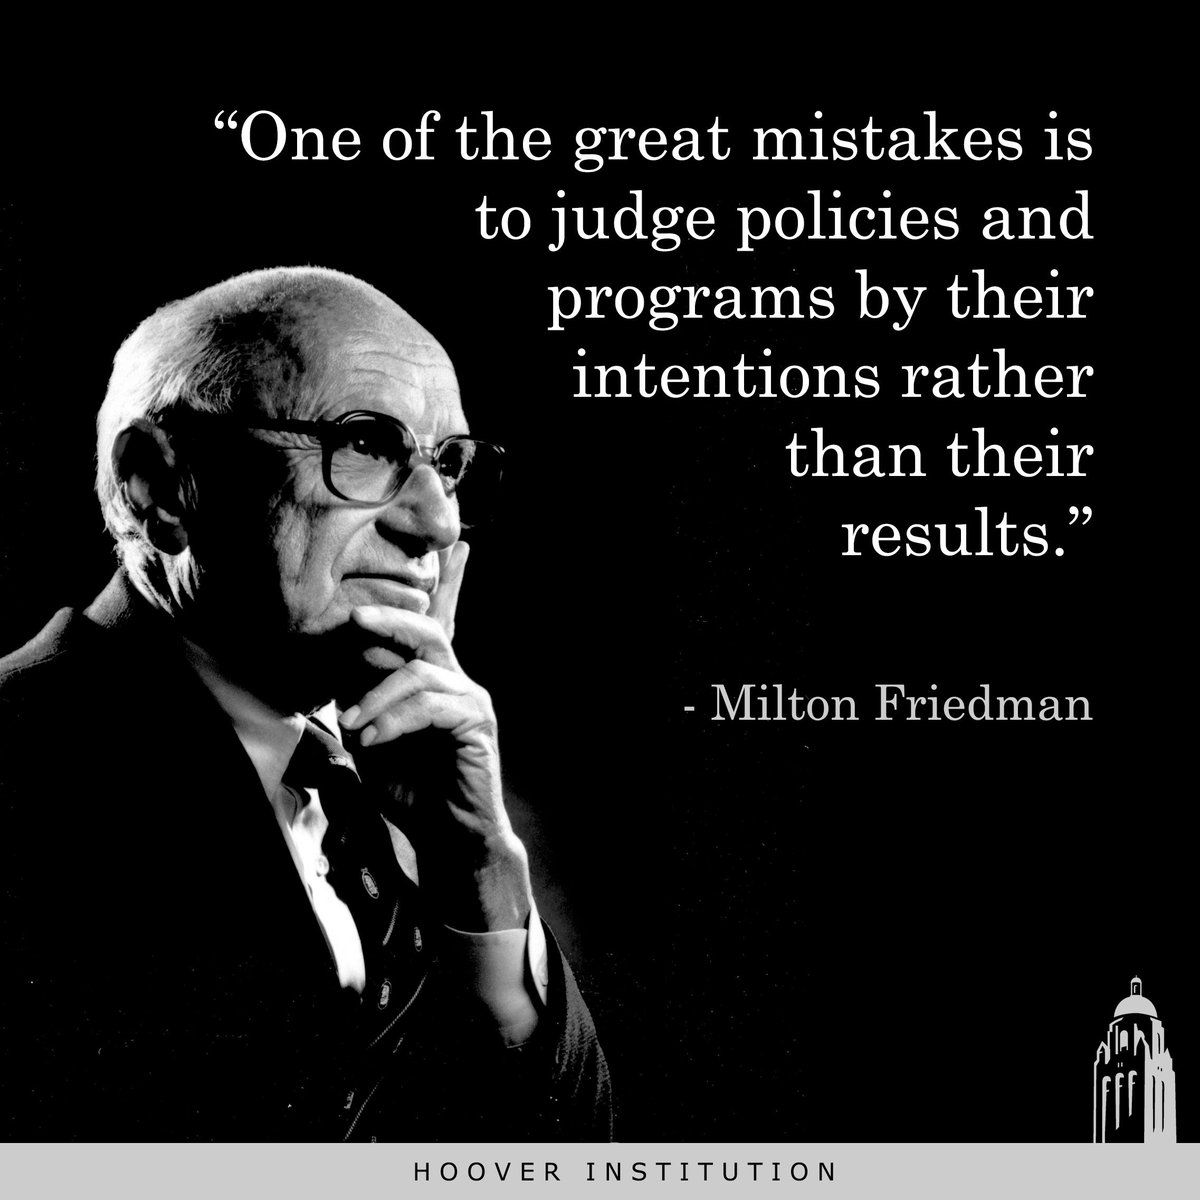 """One of the great mistakes is to judge policies and programs by their intentions rather than their results."" https://t.co/f6wGI2EfjR"